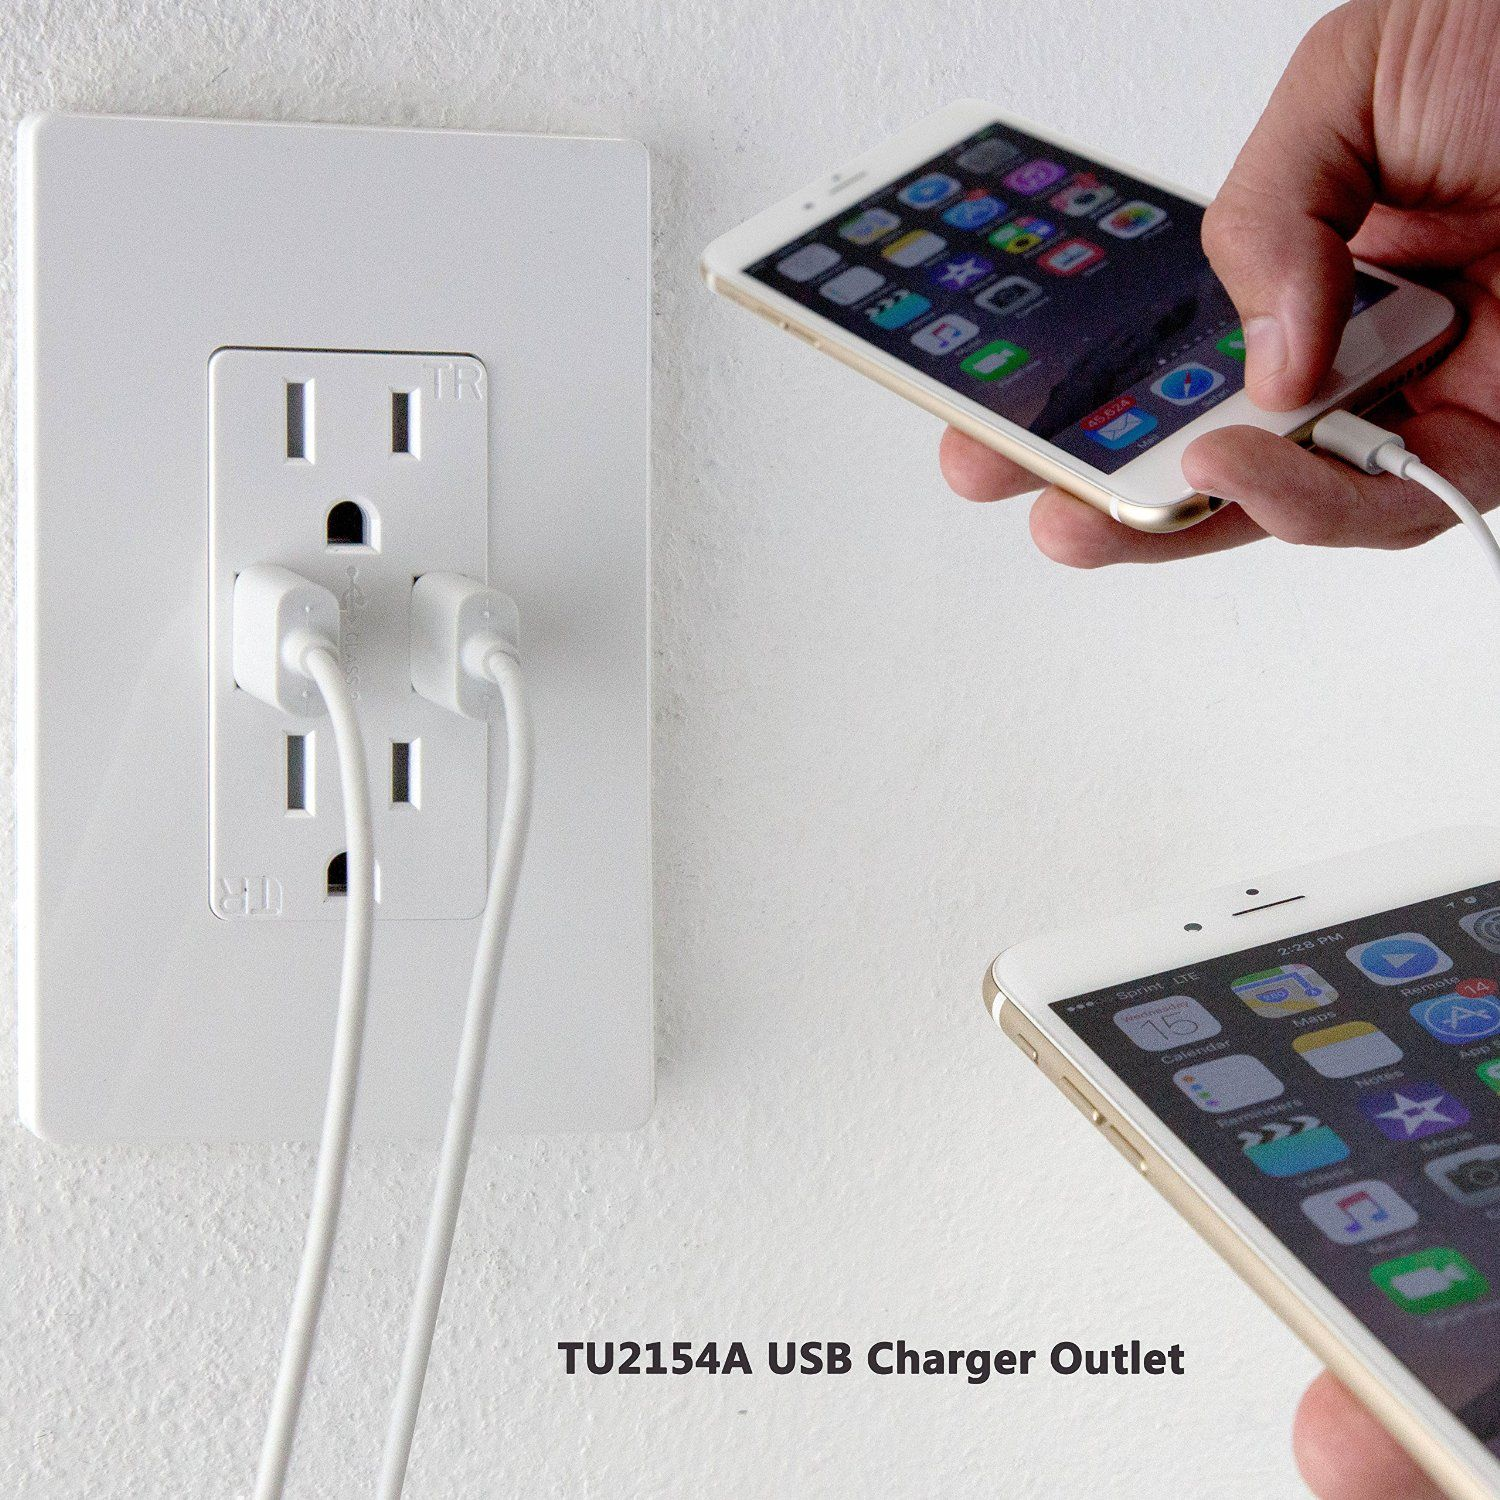 Robot Check Usb Charger Outlet Usb Chargers Usb Wall Charger